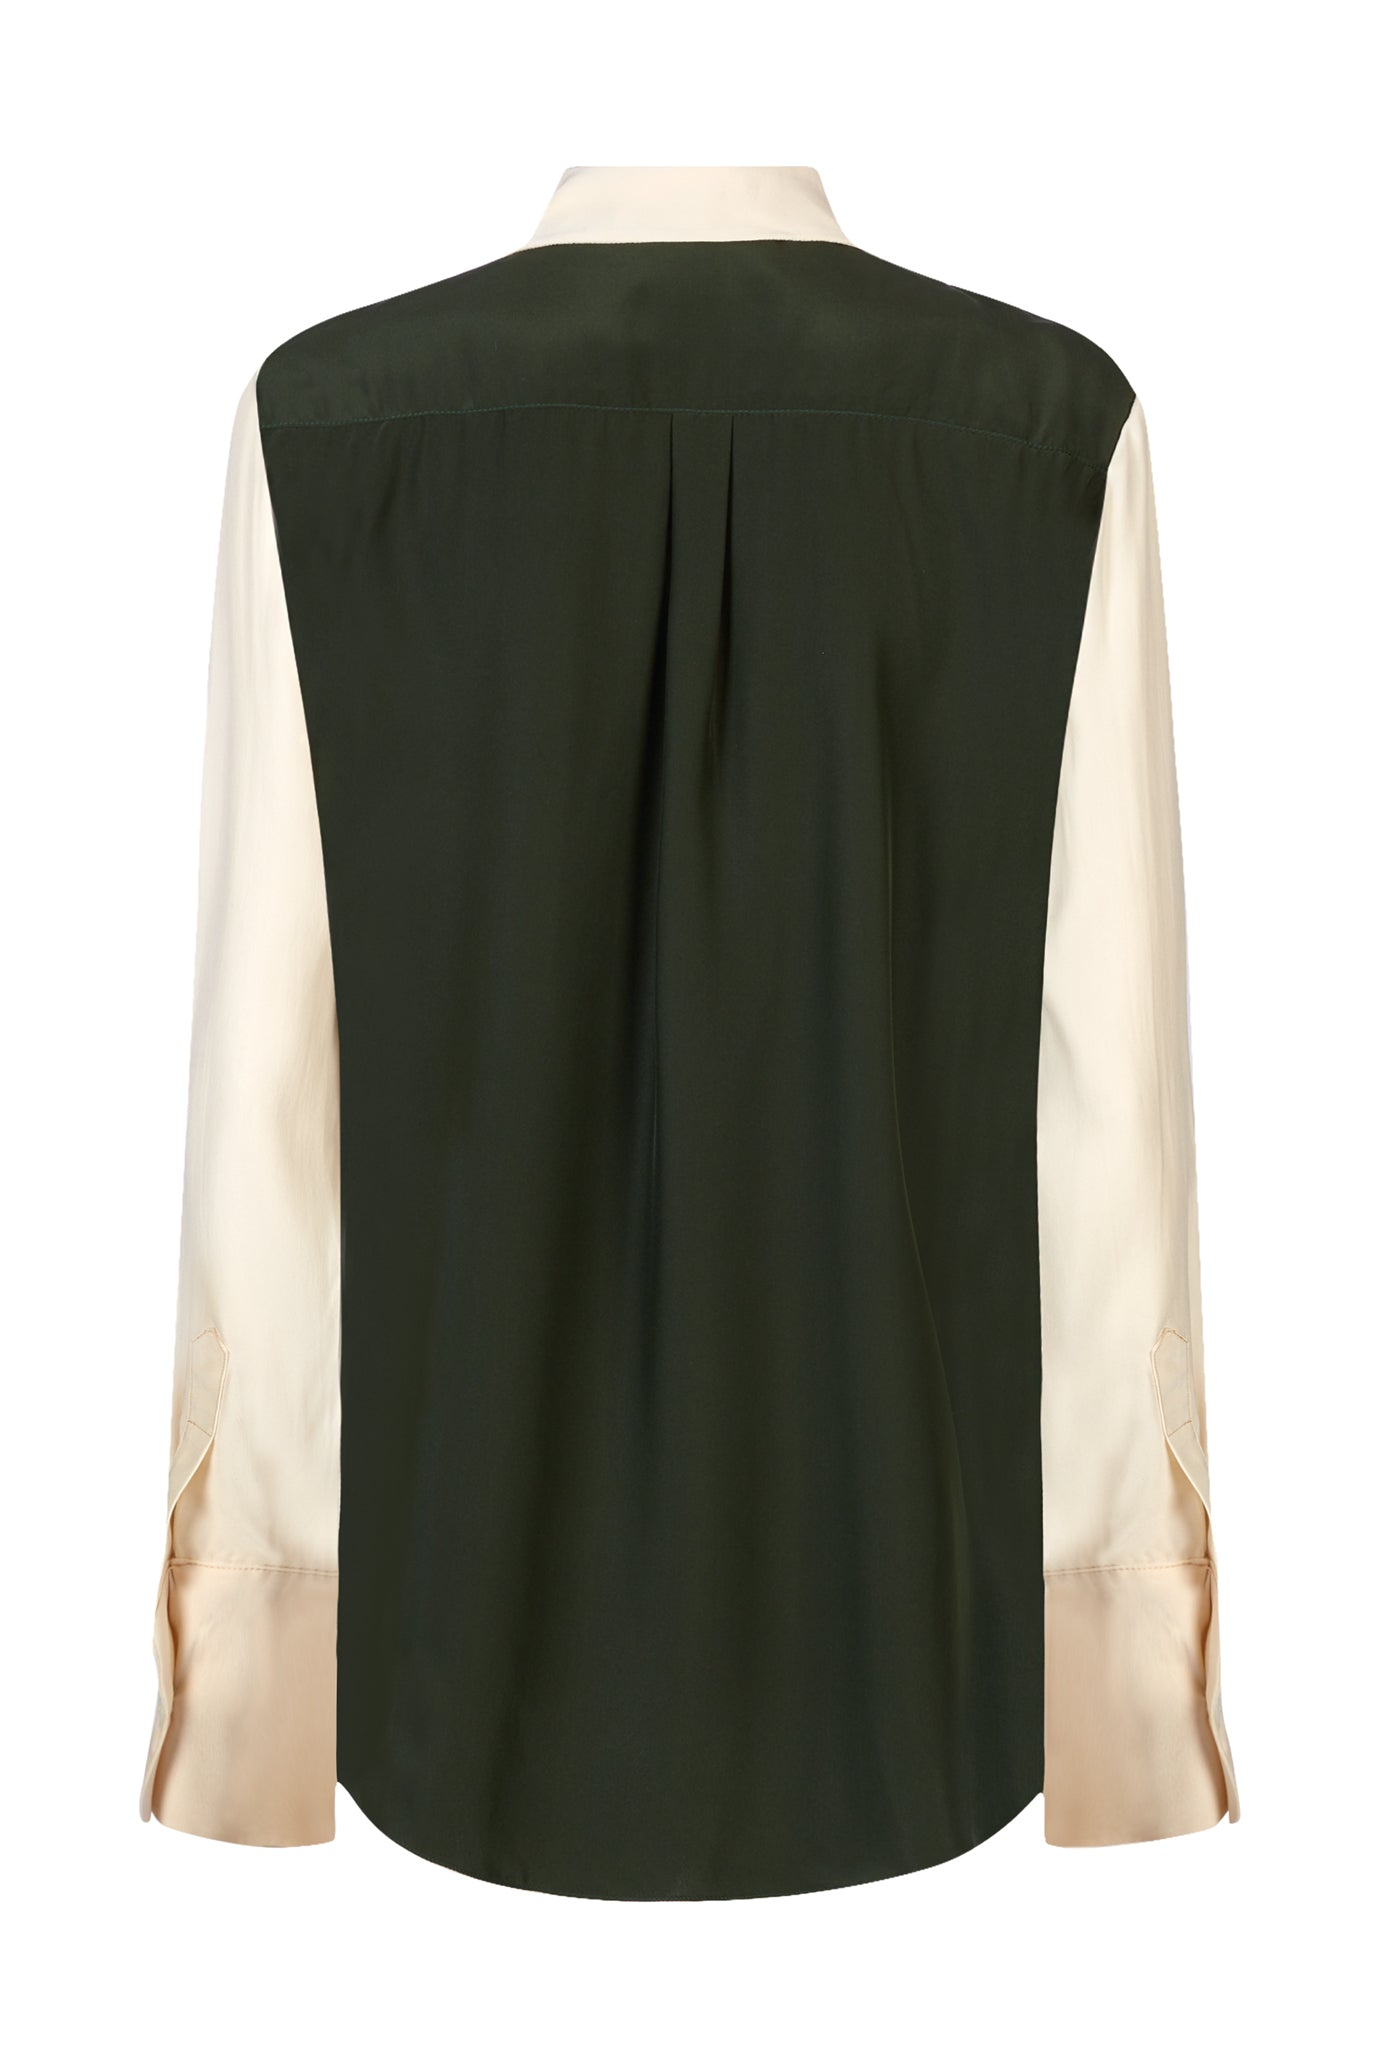 The Slim Shirt - Moss & Blush Silk